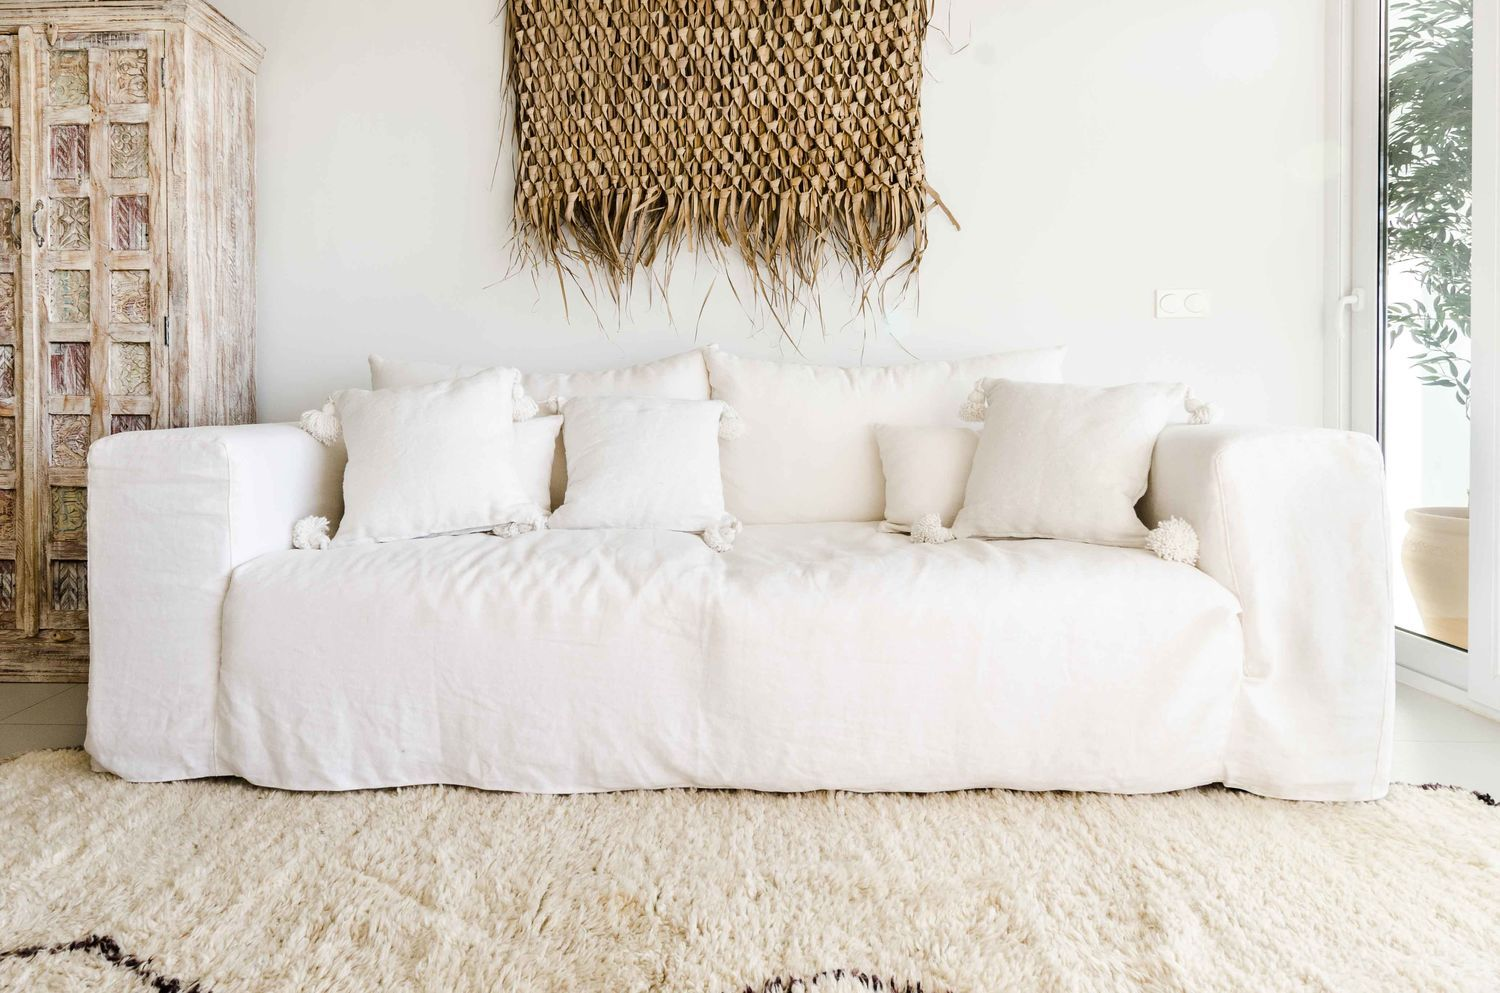 Pin By Kai An Chee On Inspo Linen Sofa White Sofas Linen Couch